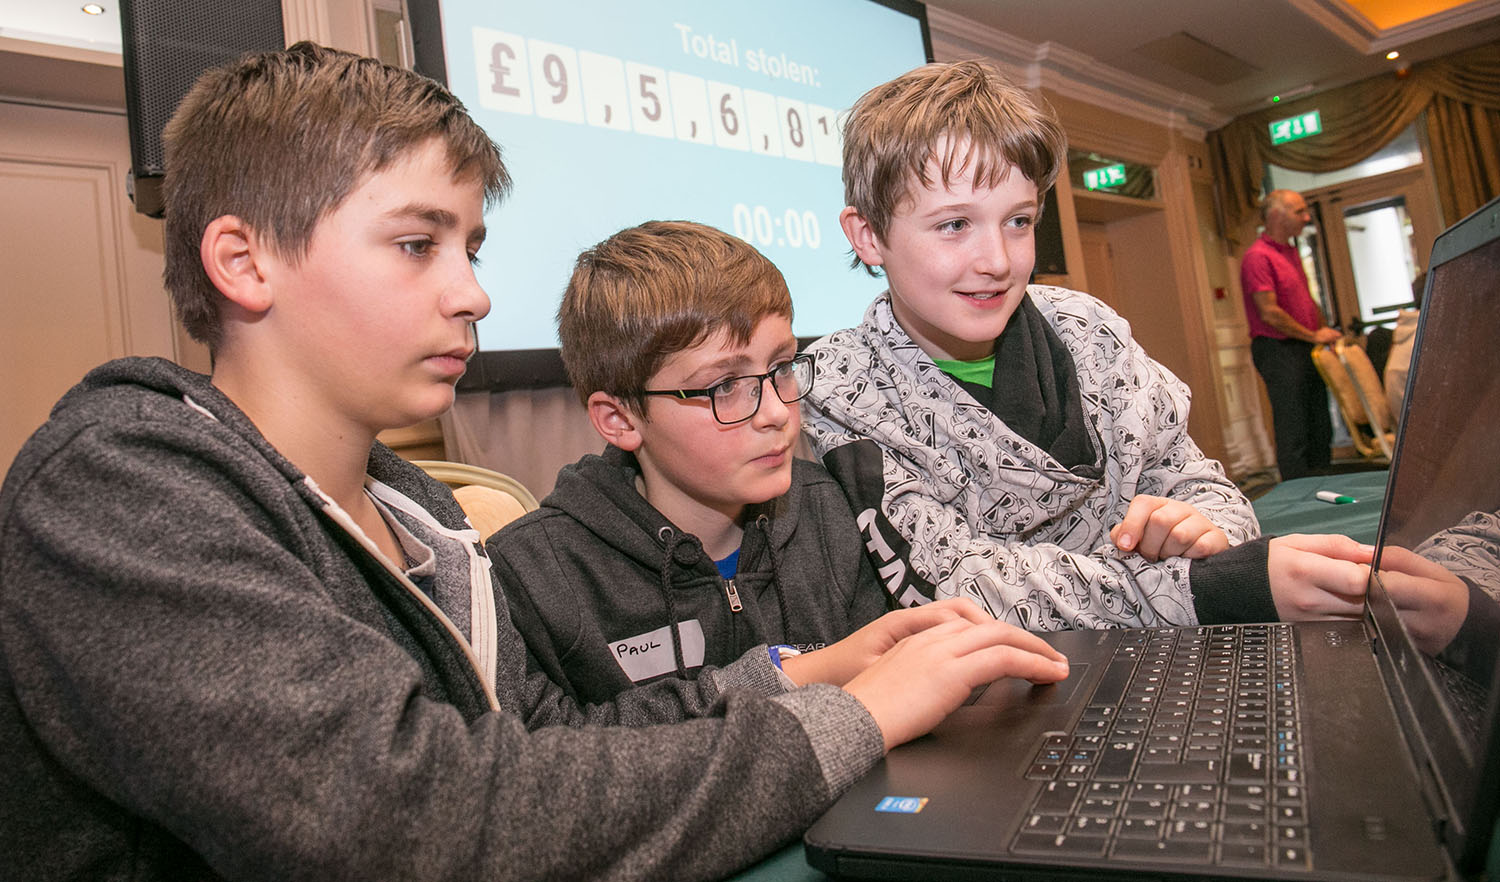 CoderDojos allow youths to explore technology and learn about computer programming, website development and app or game design in an informal, creative and social environment. (Courtesy CoderDojo)